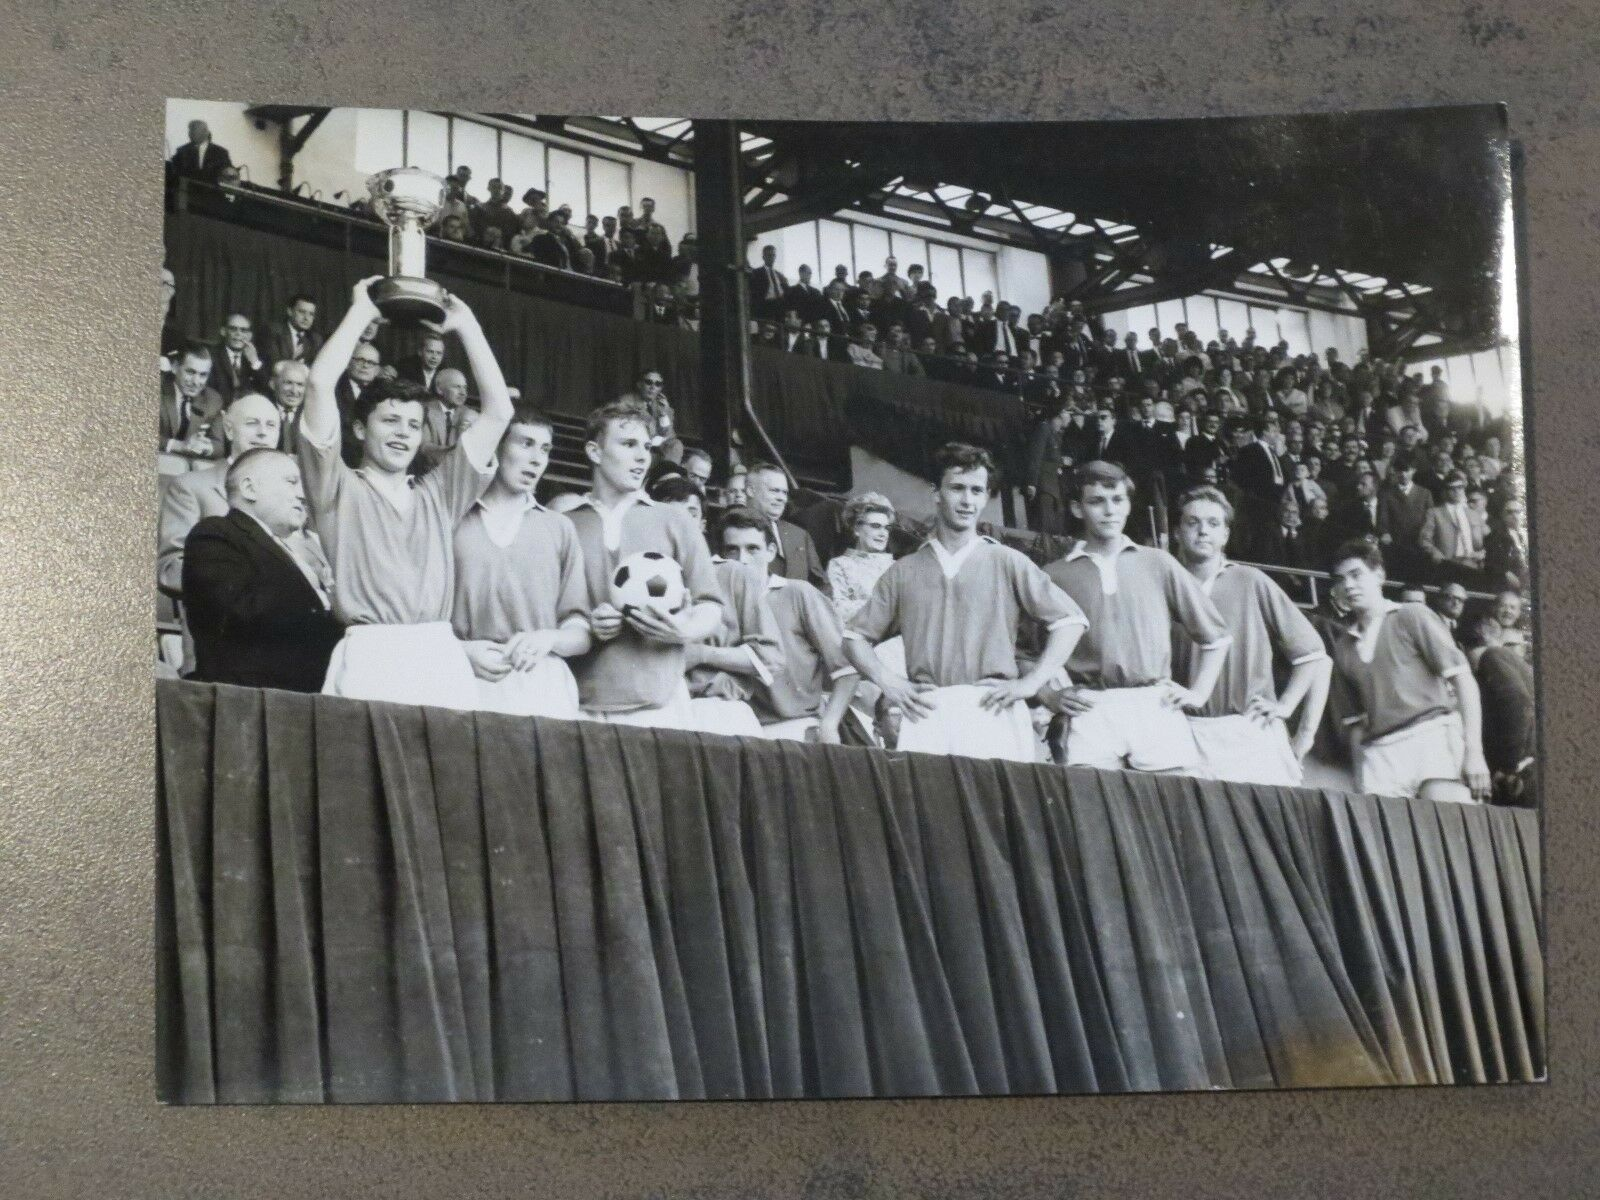 Football Belge Photographie ancienne RSCA - 13 cm sur 17 cm UEFA Final 1966 rare